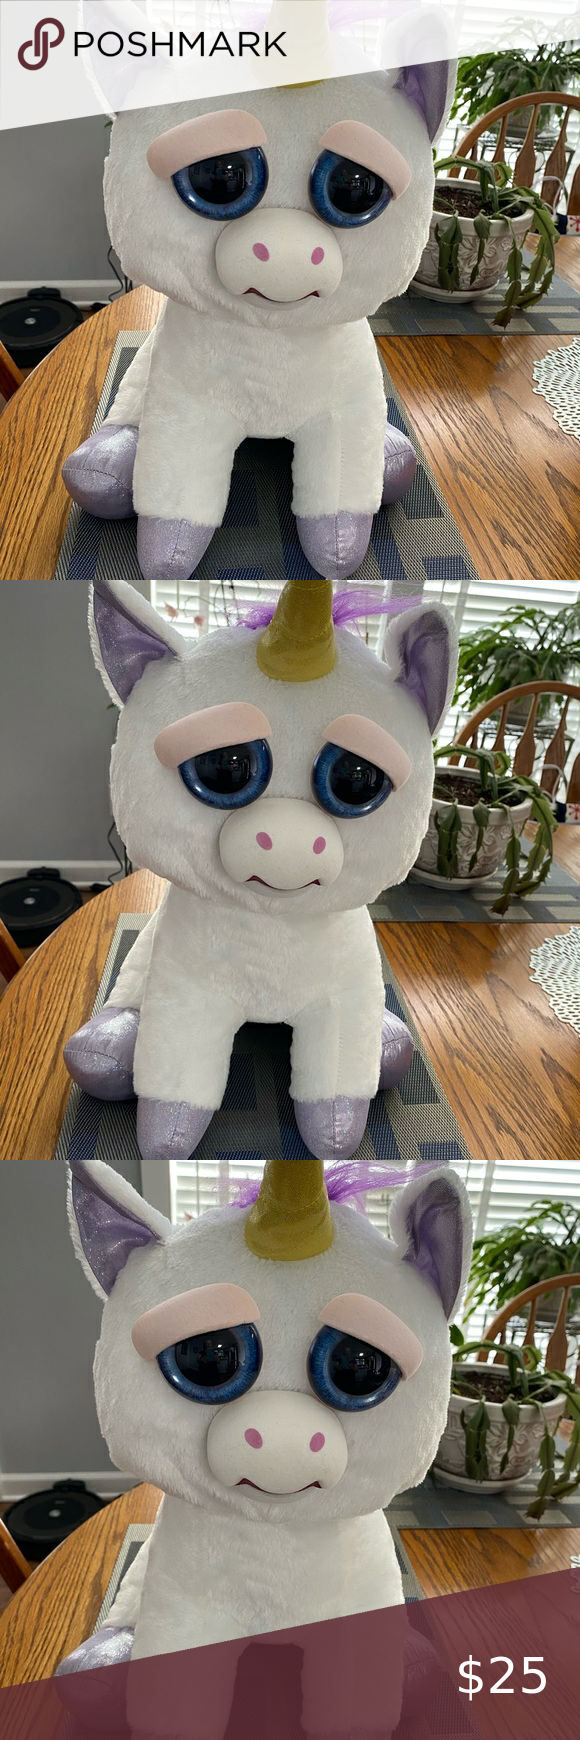 Feisty Pets Unicorn By William Marks In 2020 Feisty Pets Unicorn Pets Sassy Unicorn